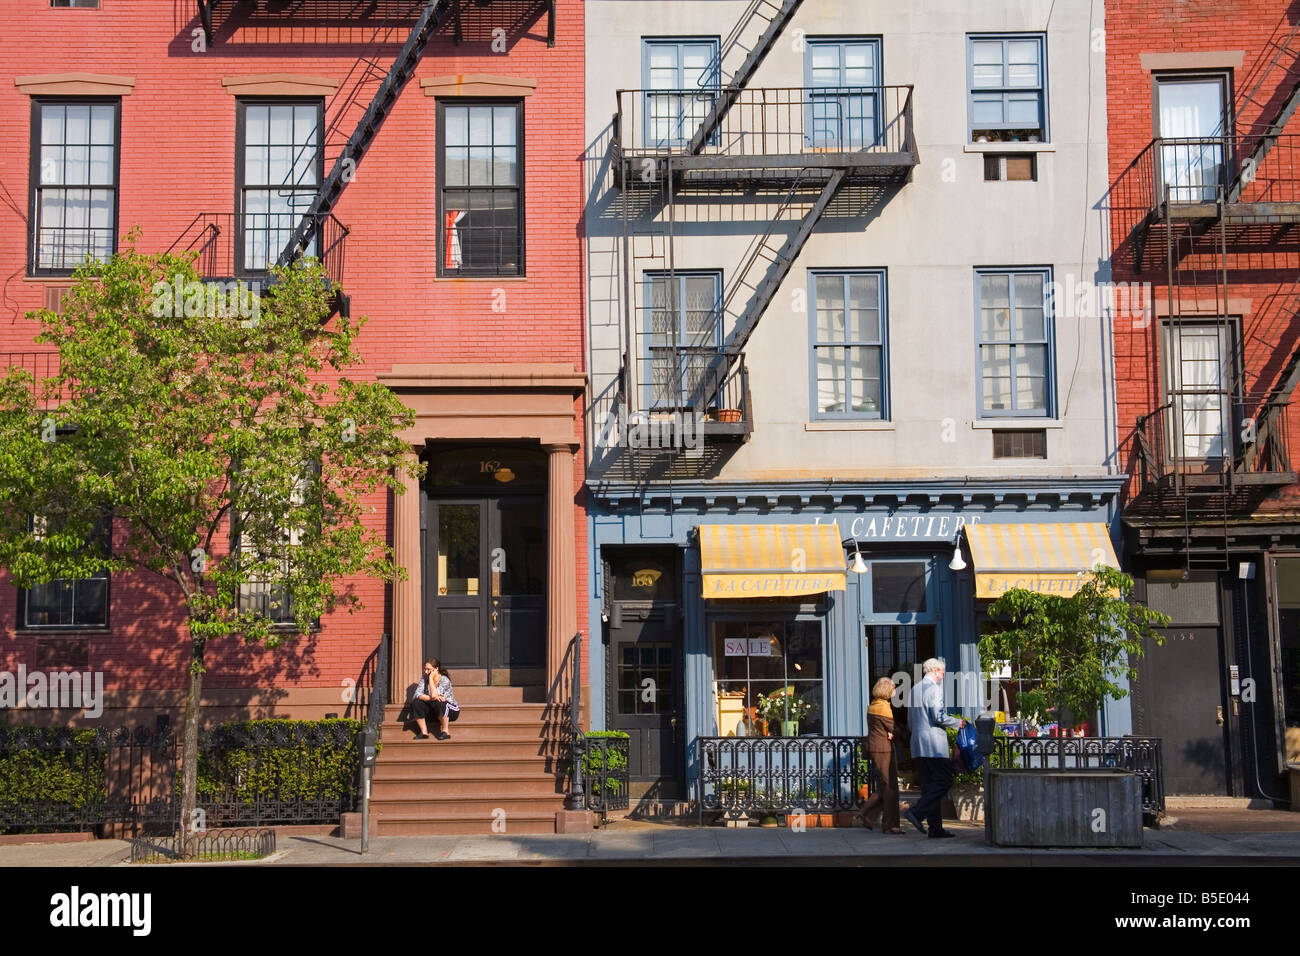 9th Avenue in Chelsea District, Midtown Manhattan, New York City, USA, North America Stock Photo